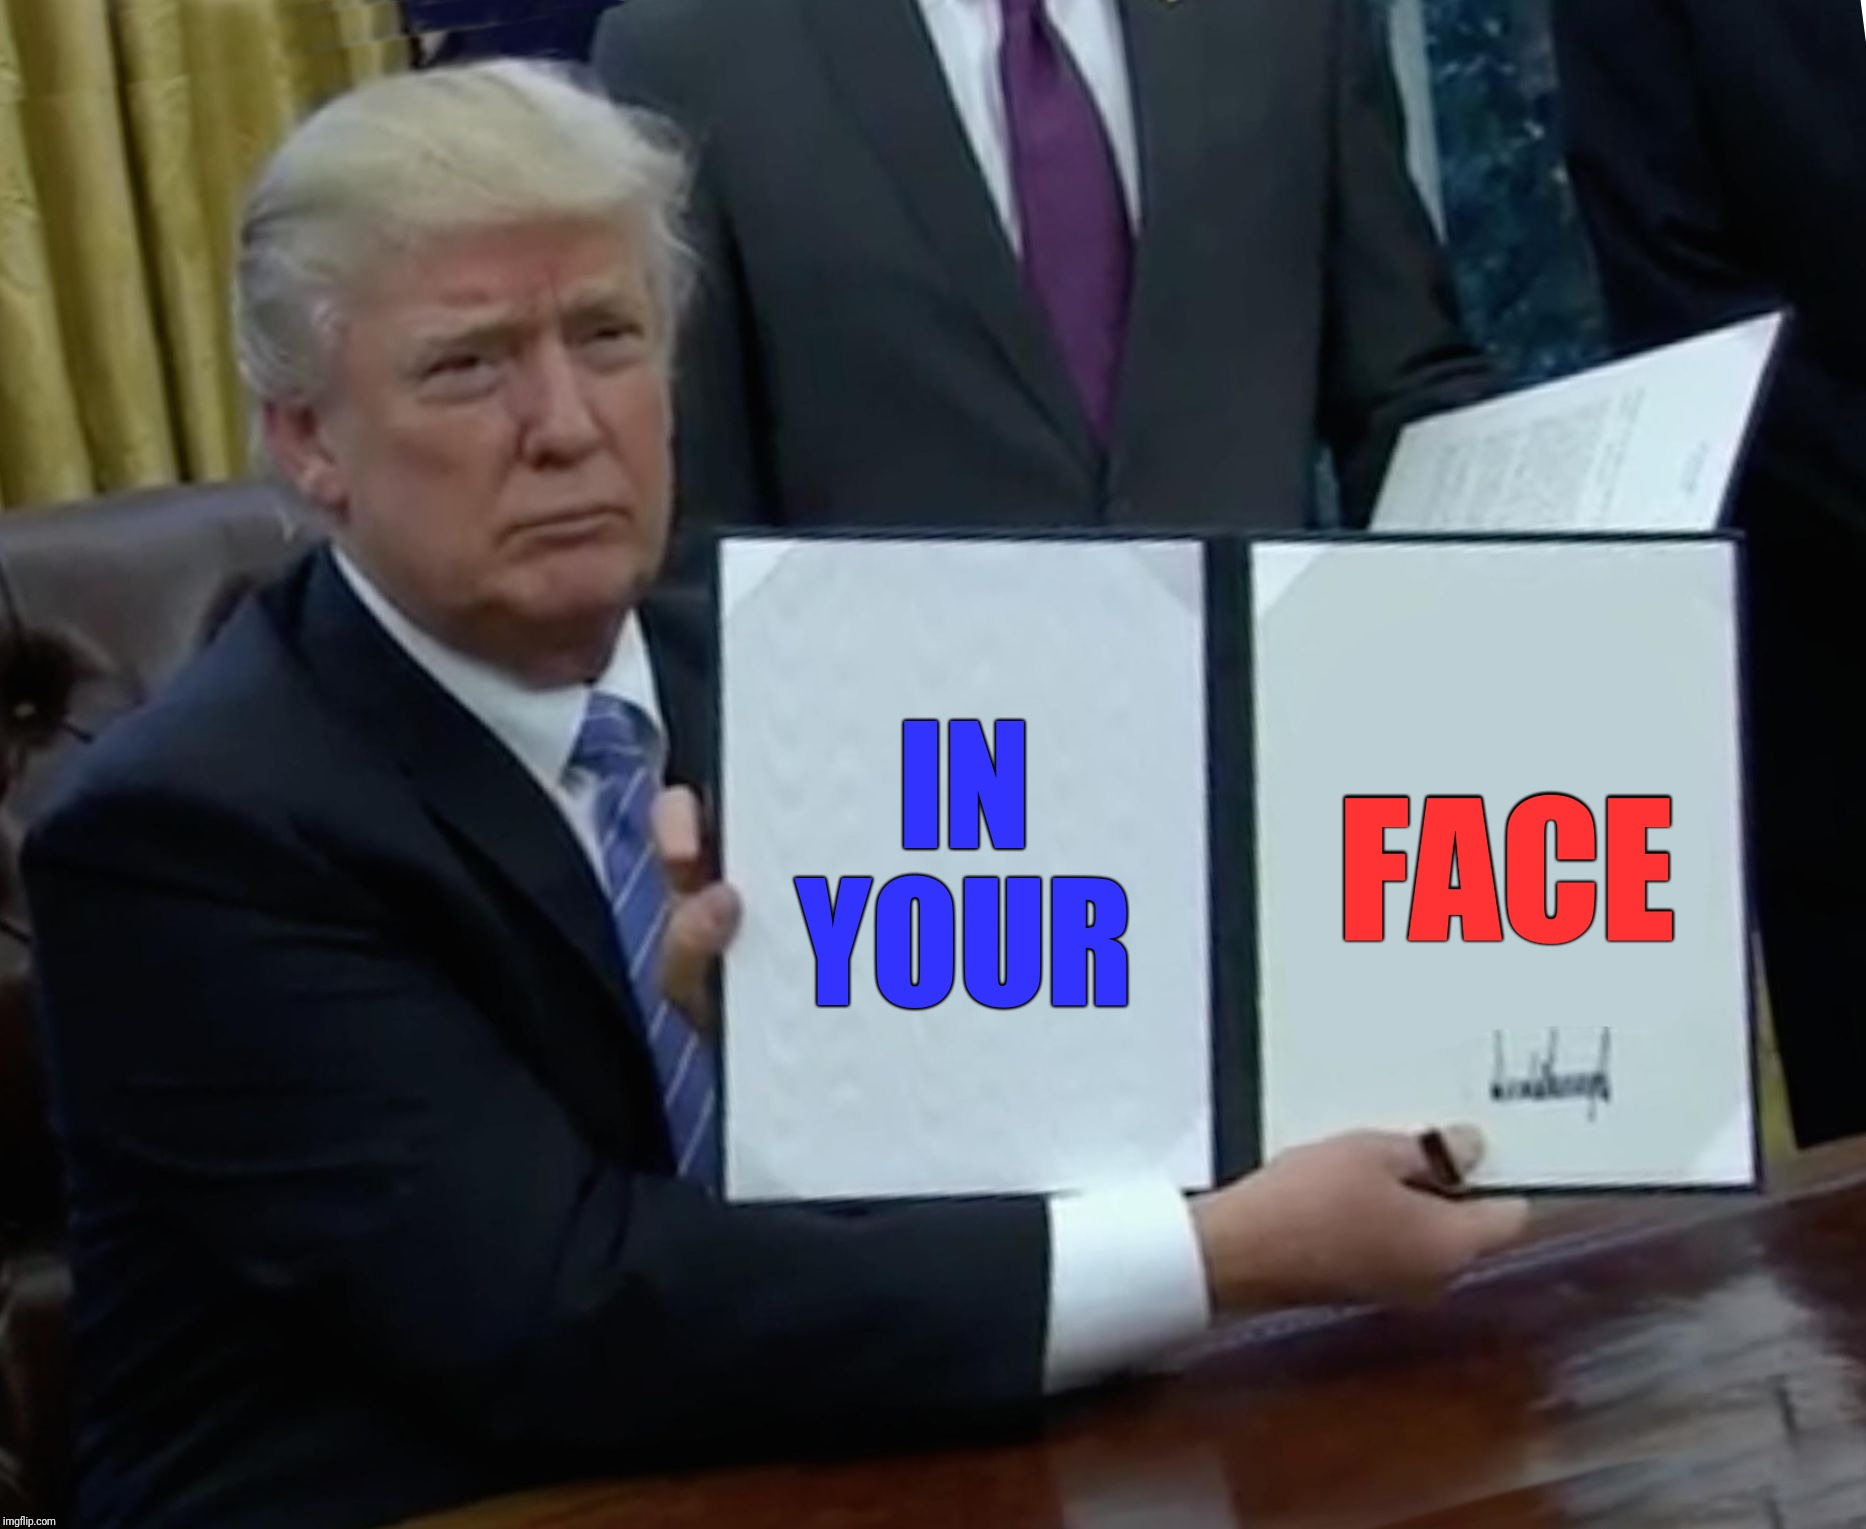 Trump SCOTUS pick No. 2 ... | IN YOUR FACE | image tagged in memes,trump bill signing,politics,political meme,political,maga | made w/ Imgflip meme maker